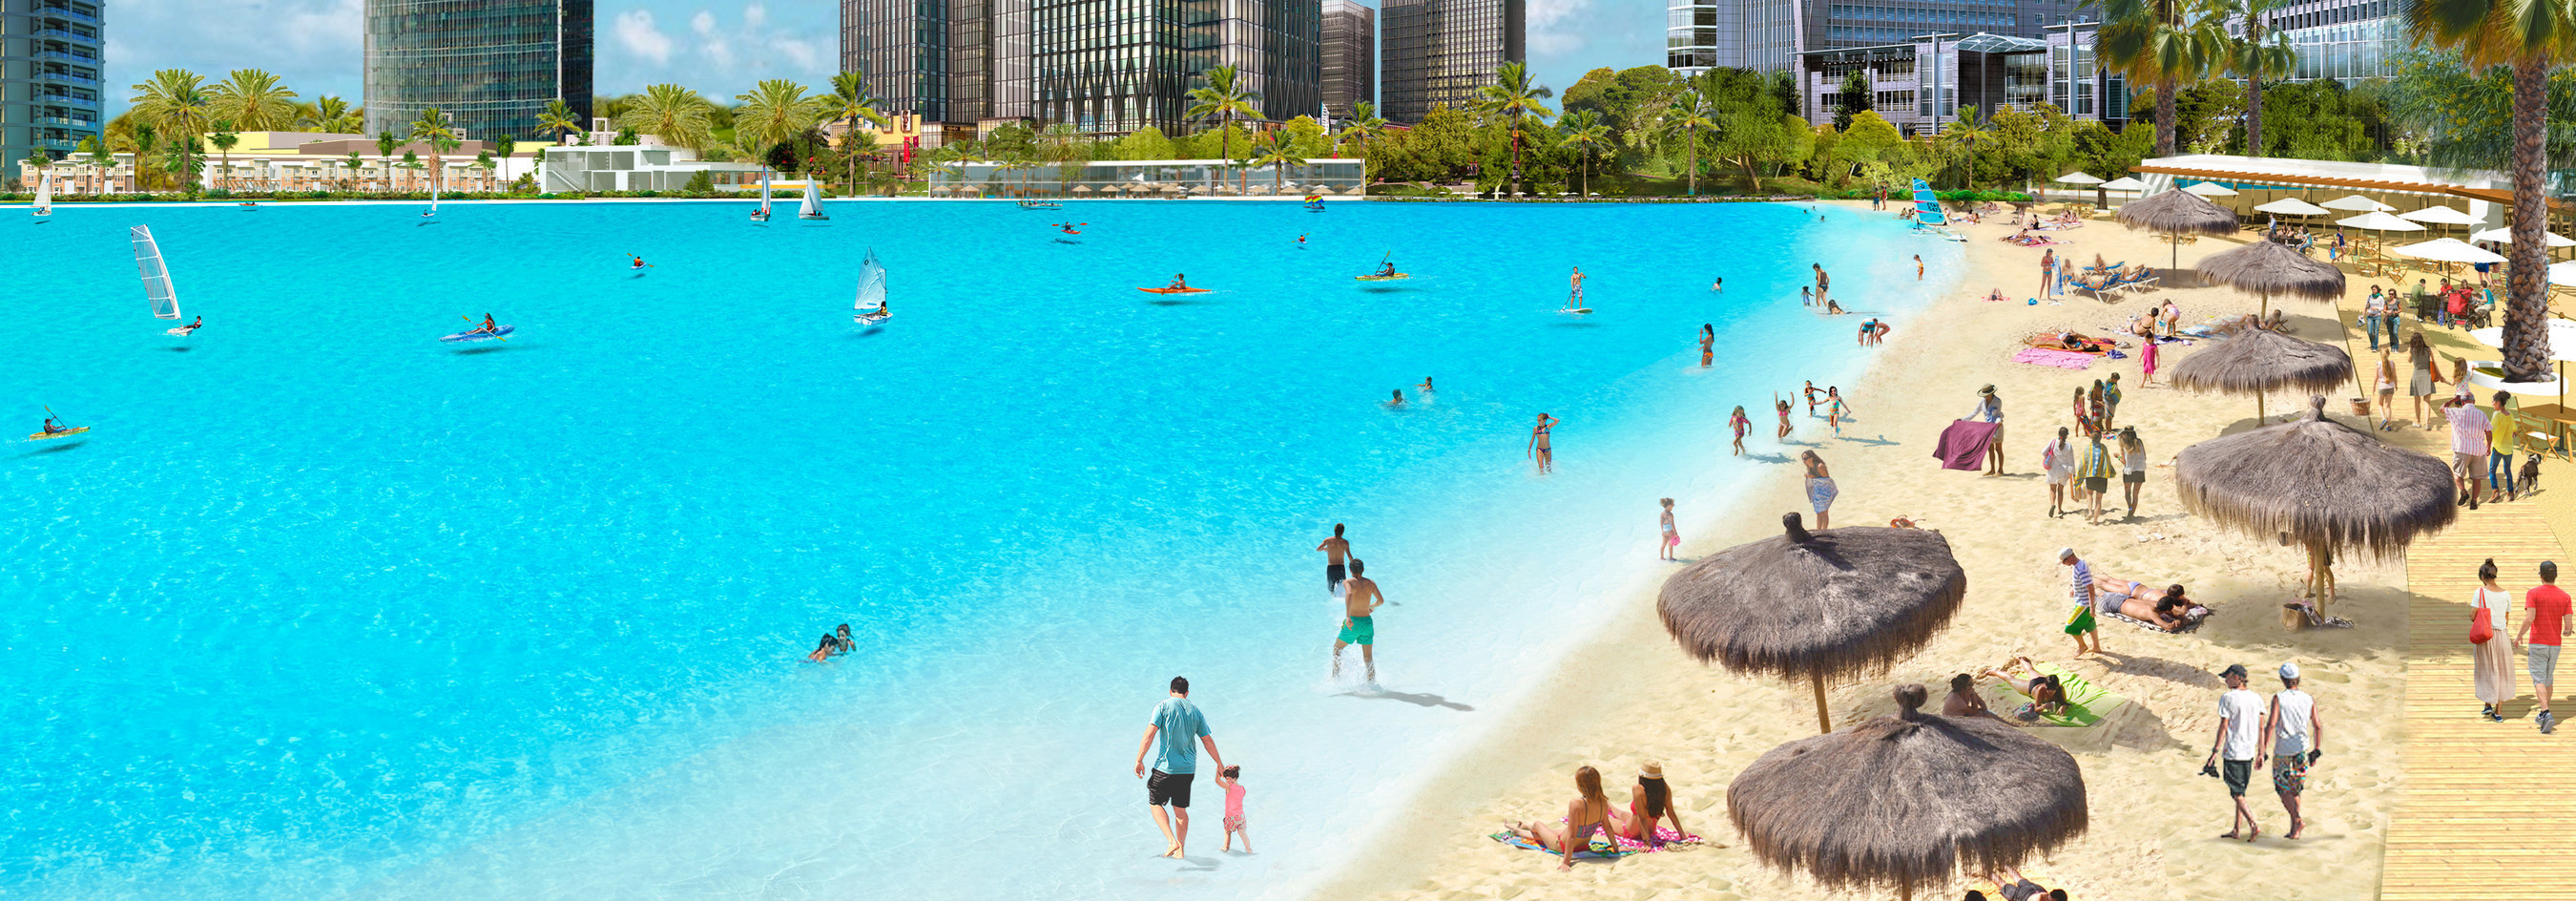 Crystal Lagoons Concept Idyllic Beach Life Water Sports Please Note Rendering